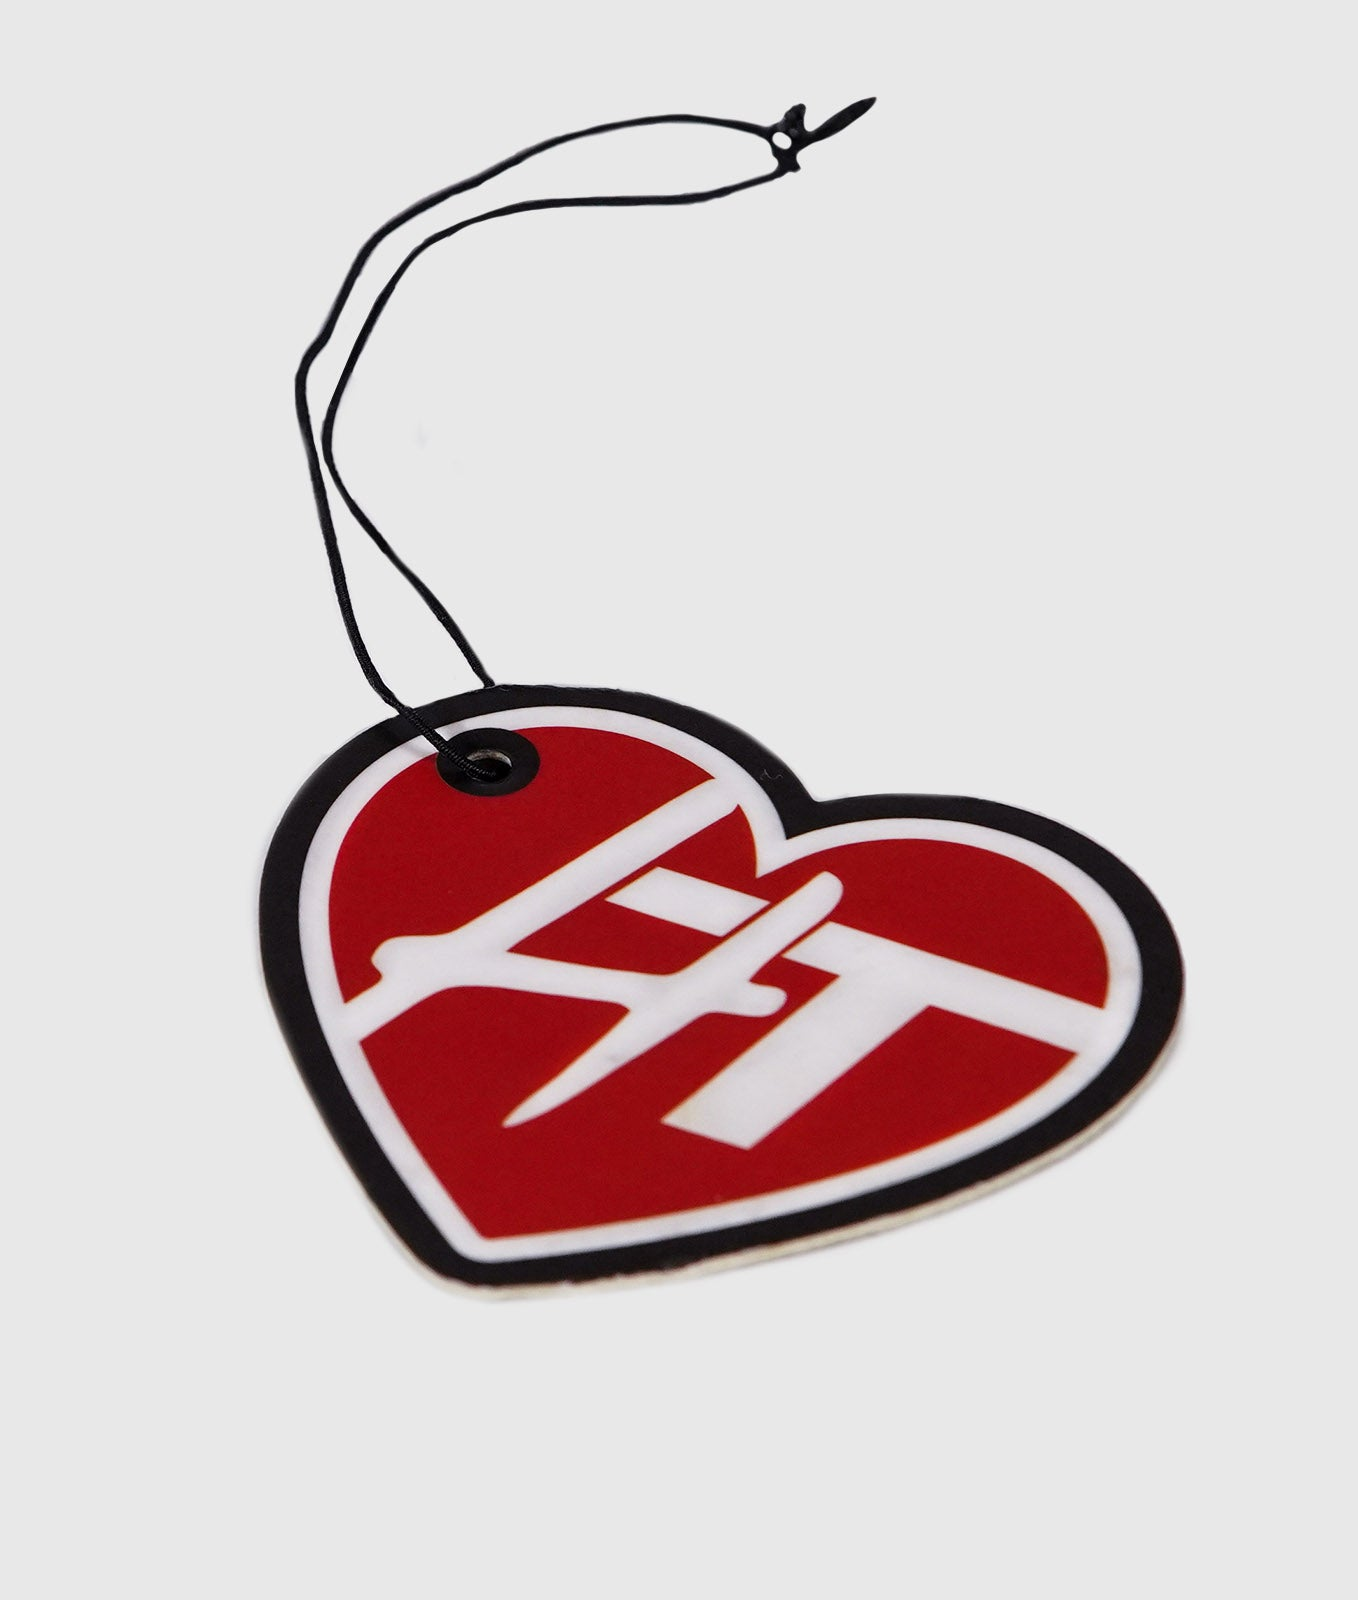 HT HEART Air Freshener - Cherry